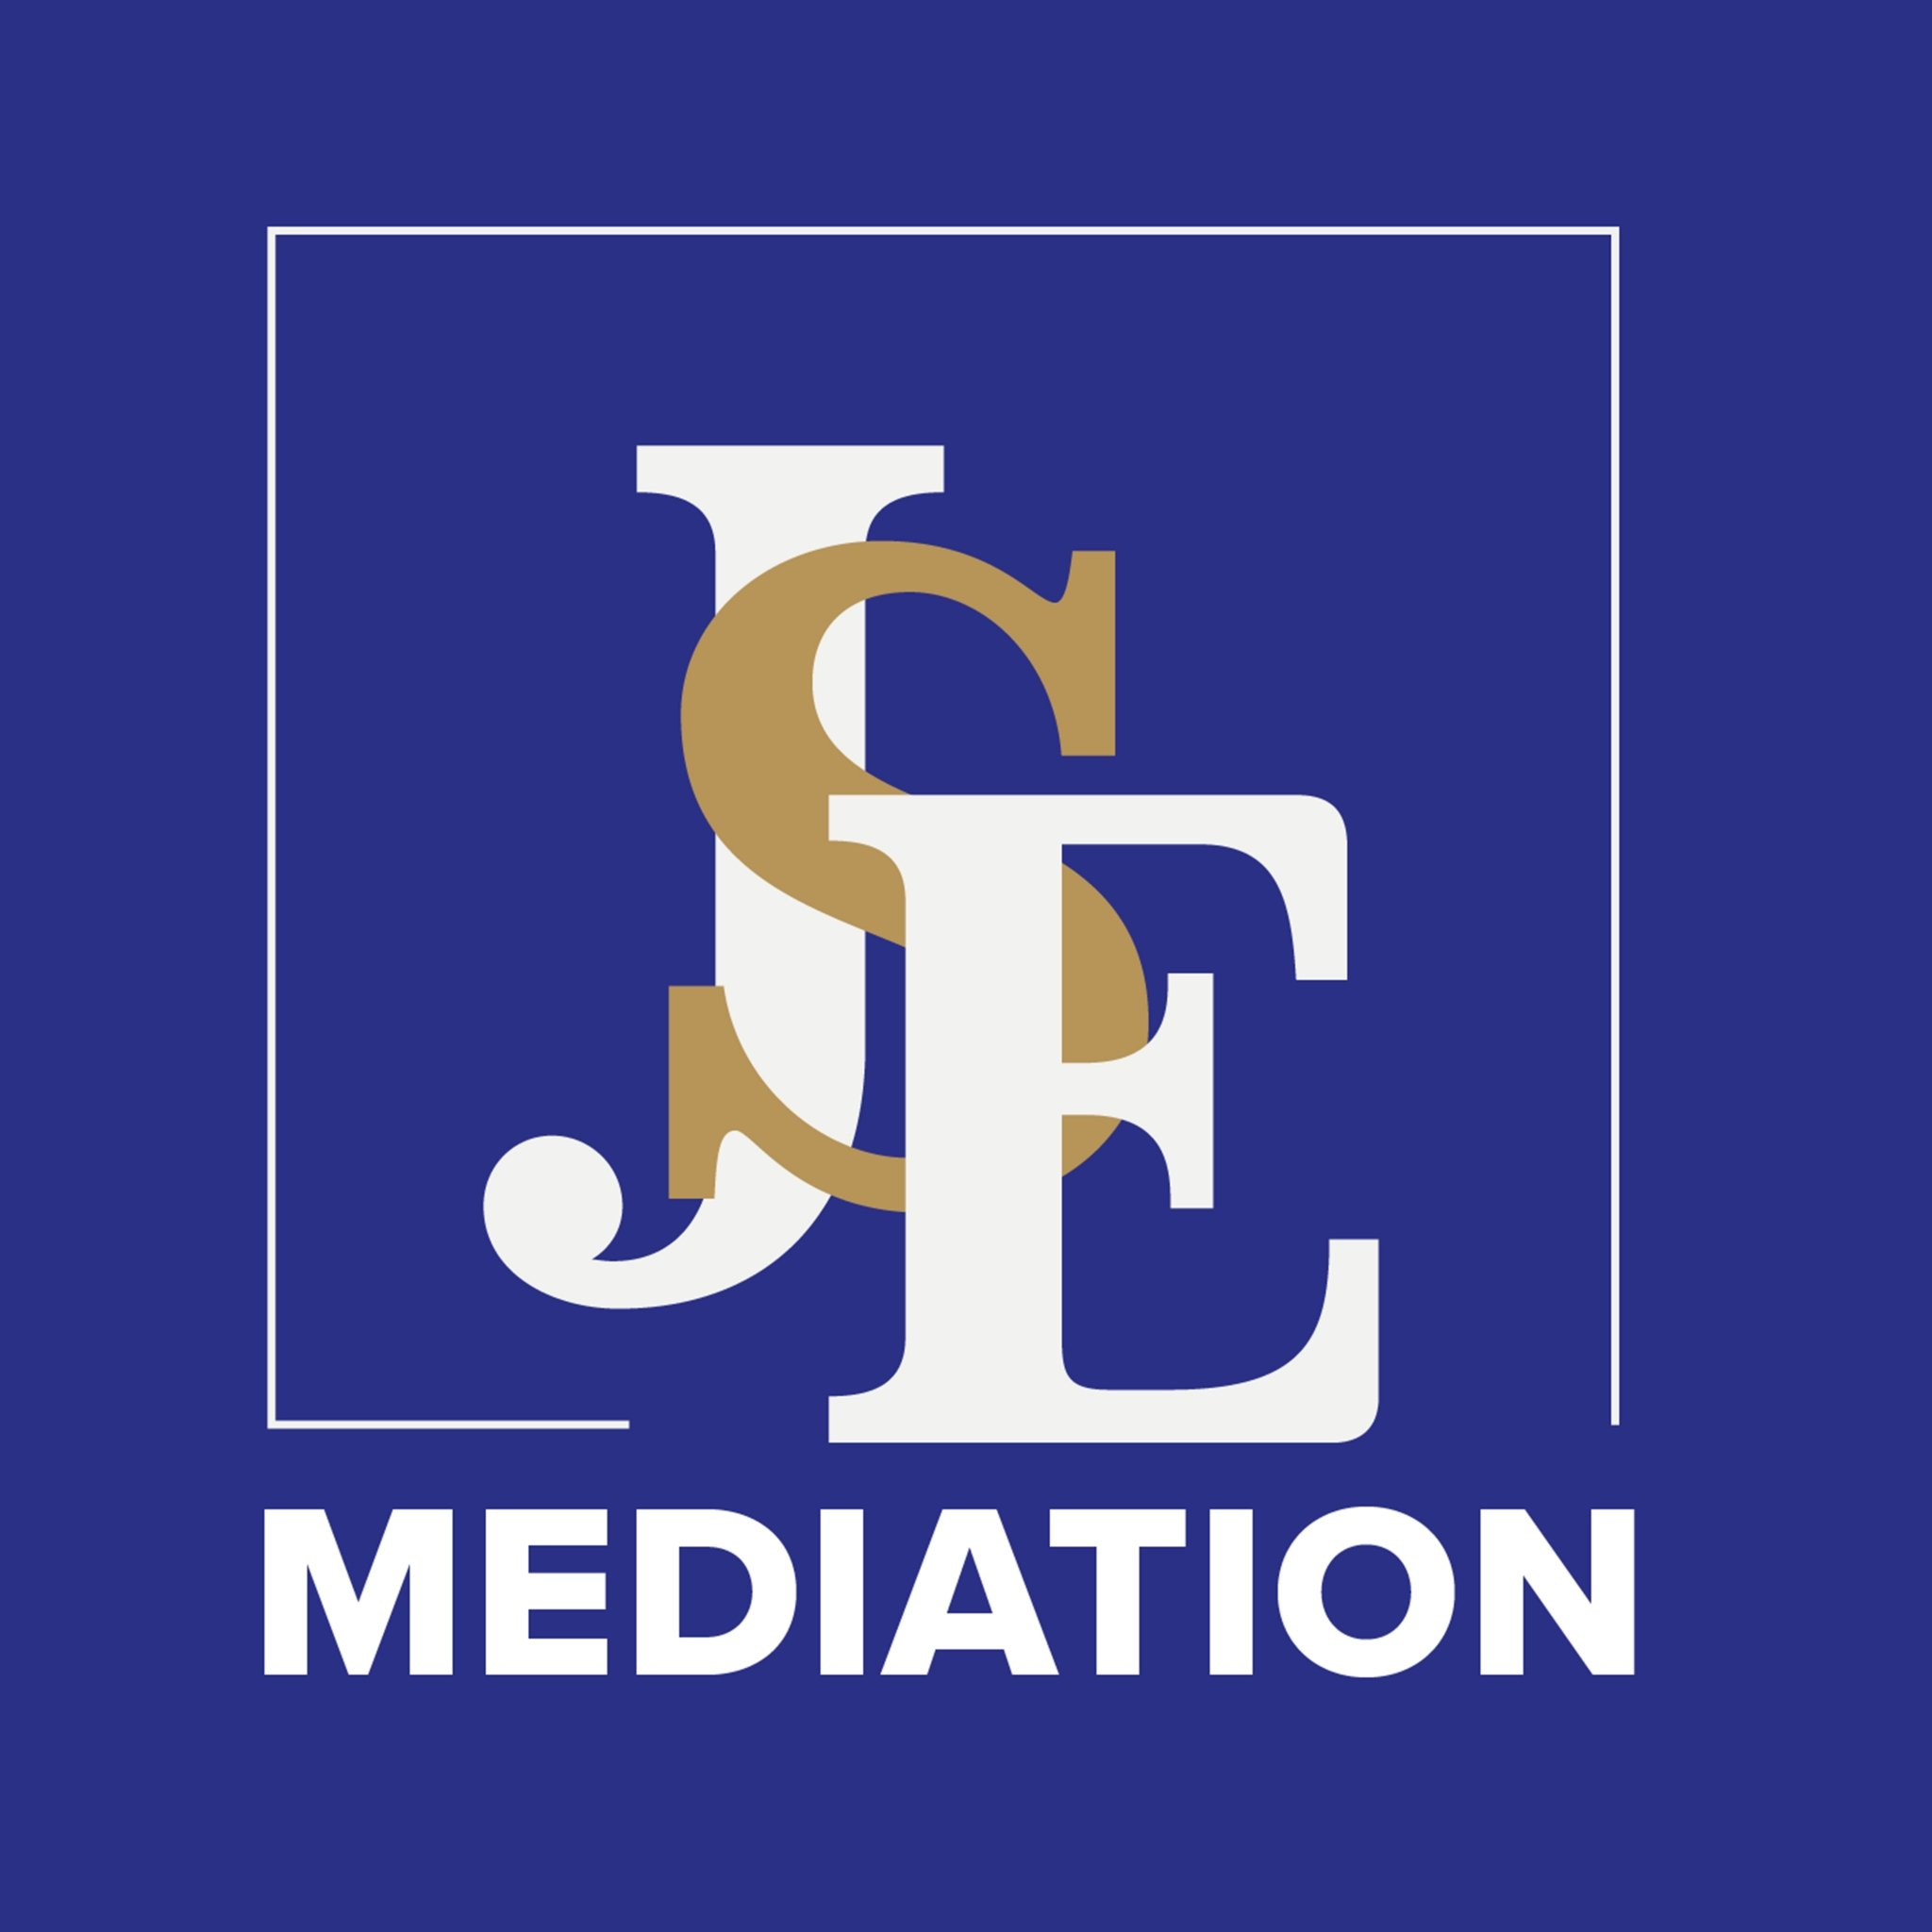 jse-mediation-logo